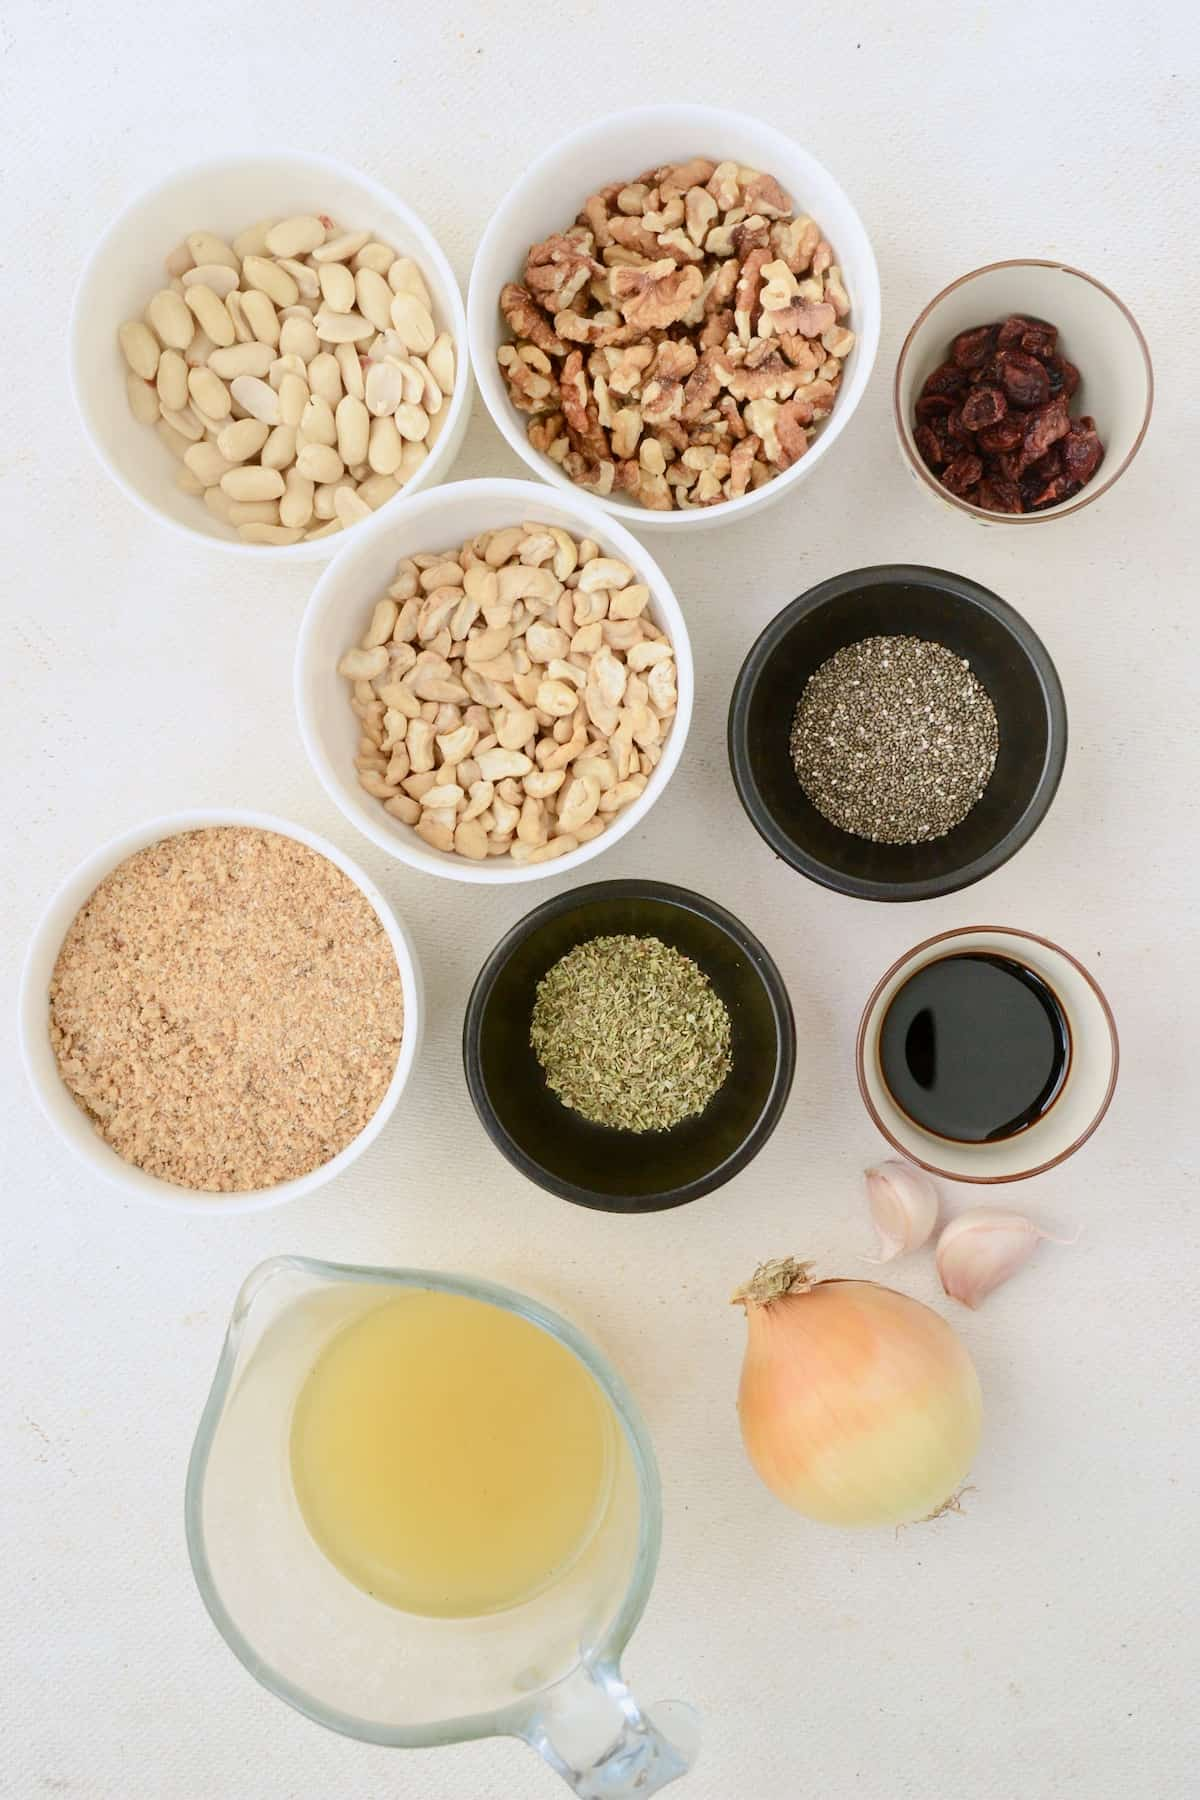 The ingredients for the nutroast recipe: Different types of nuts, breadcrumbs, an onion, some garlic, dried herbs, vegetable bouillon, soy sauce, chia seeds and dried cranberries.